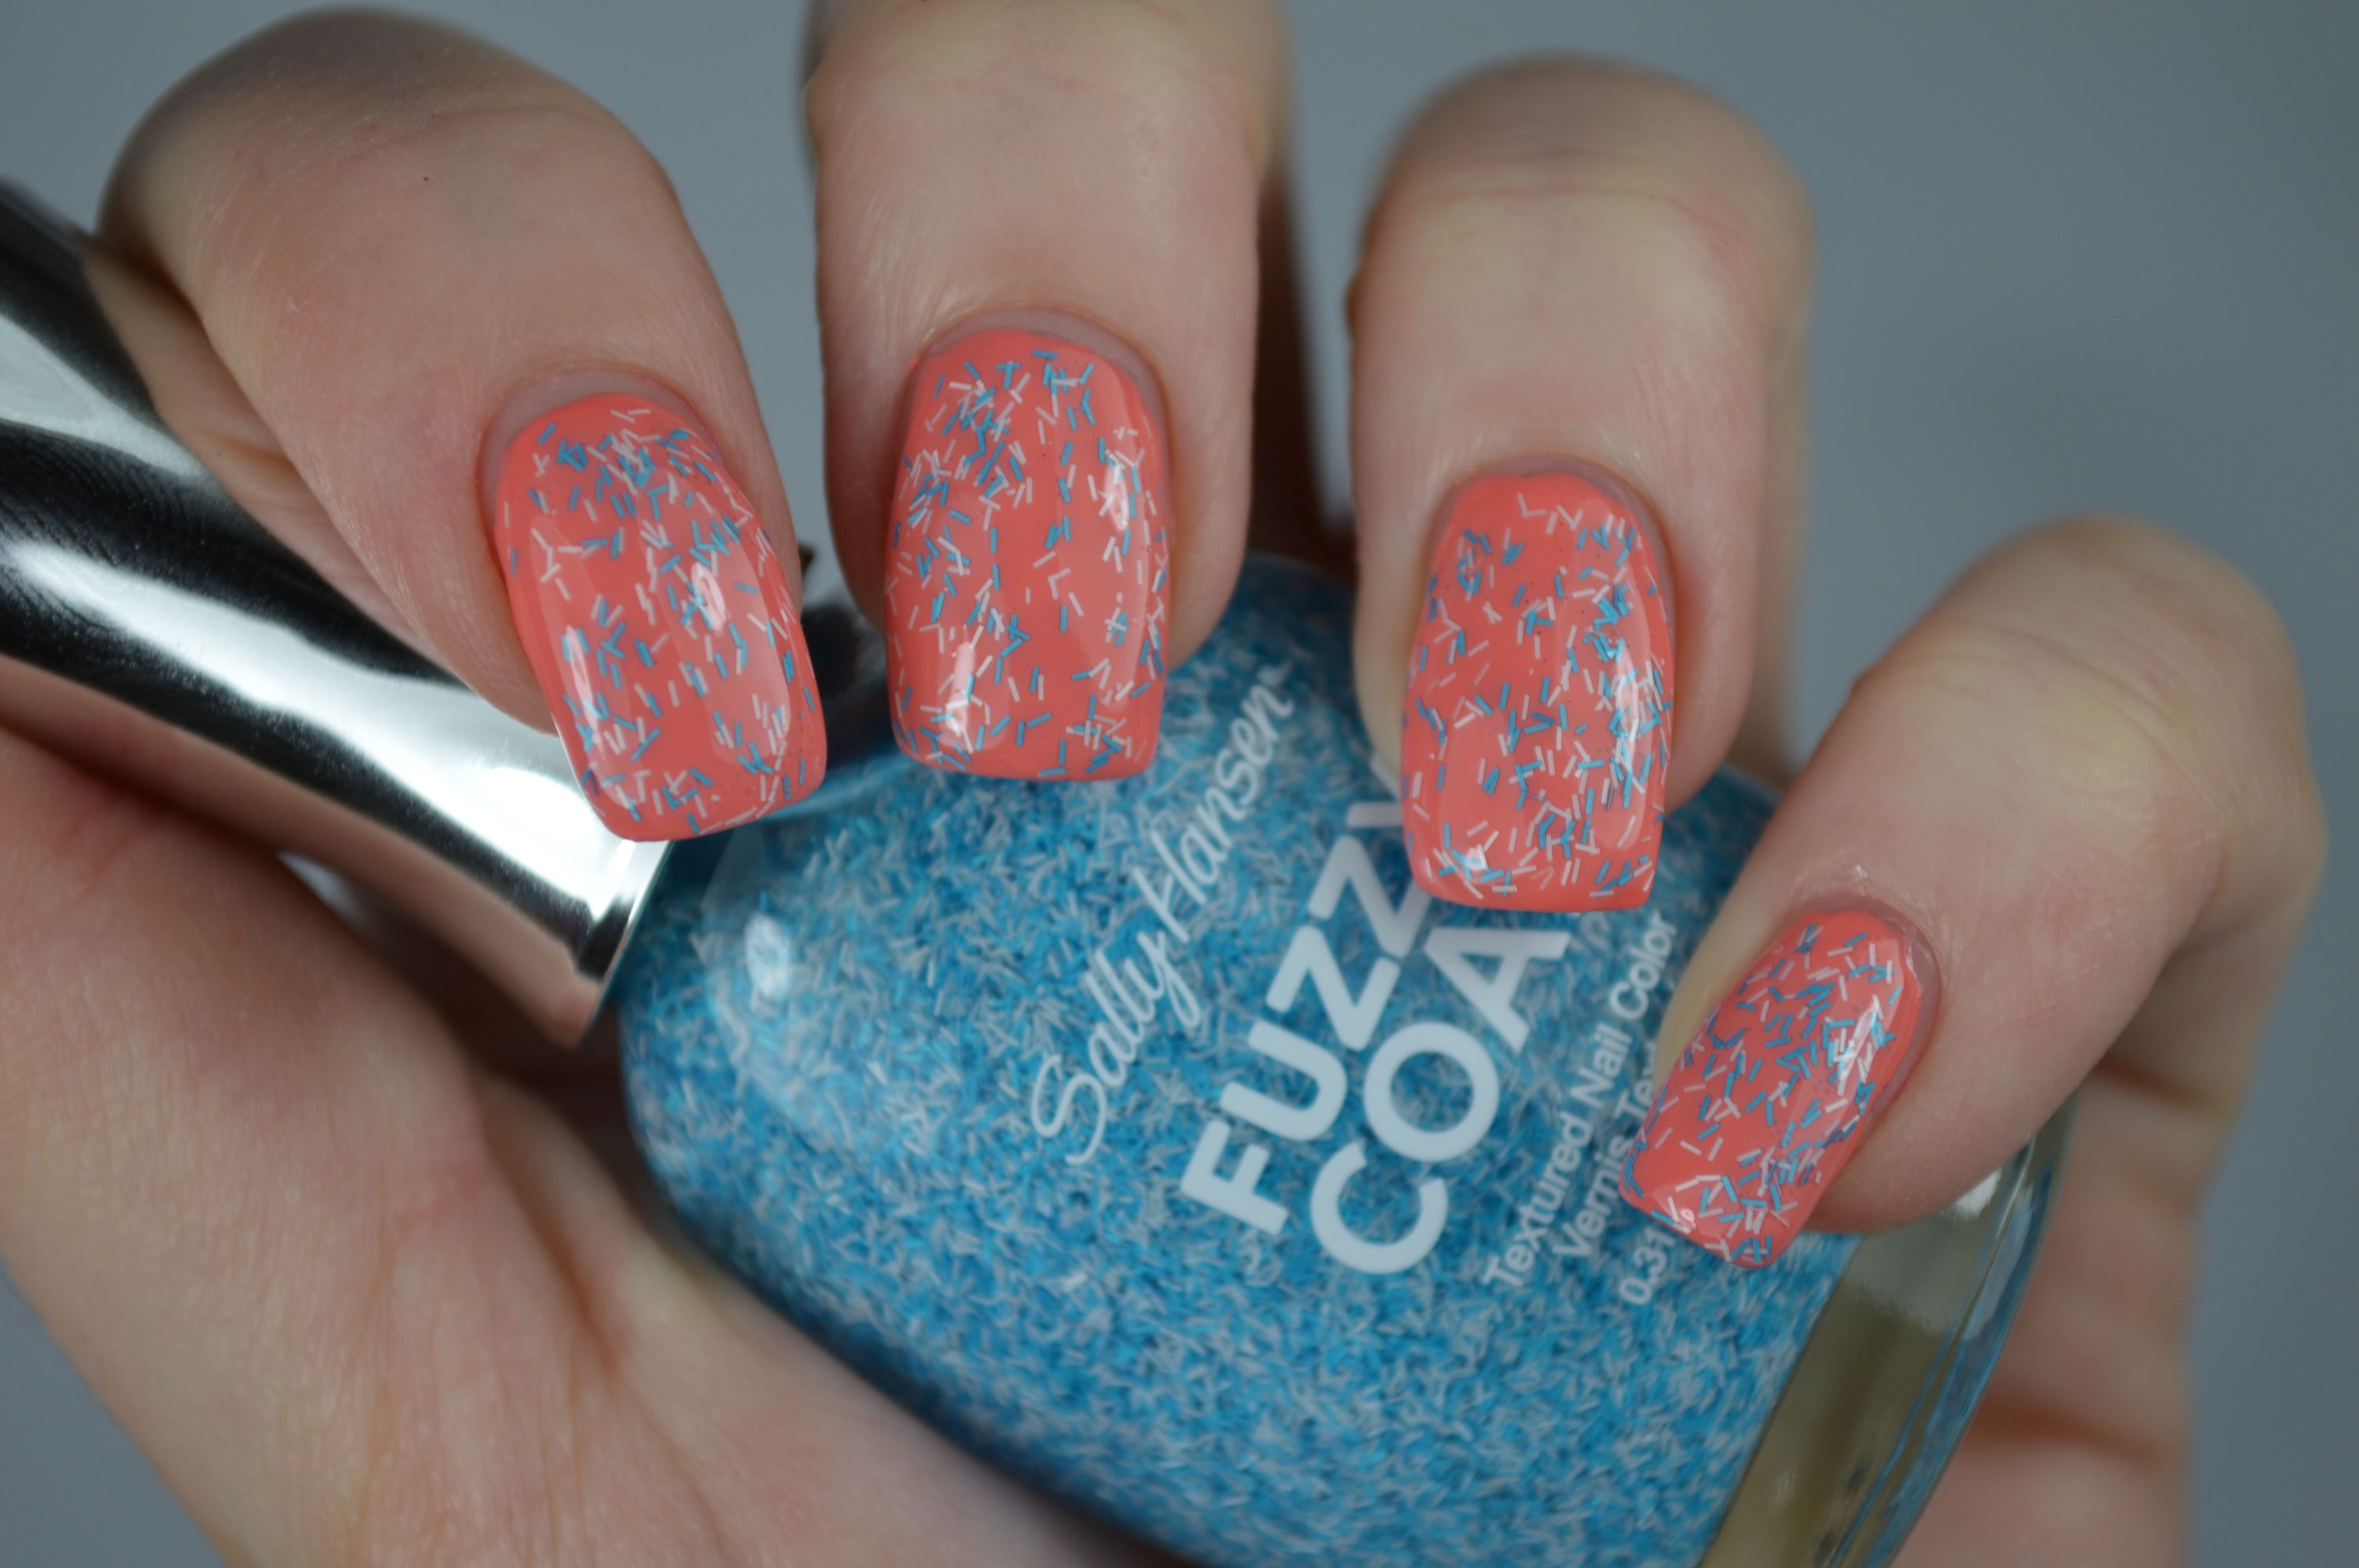 Swatches Nagellack Wool Knot Sally Hansen Fuzzy Coat Peach of Cake